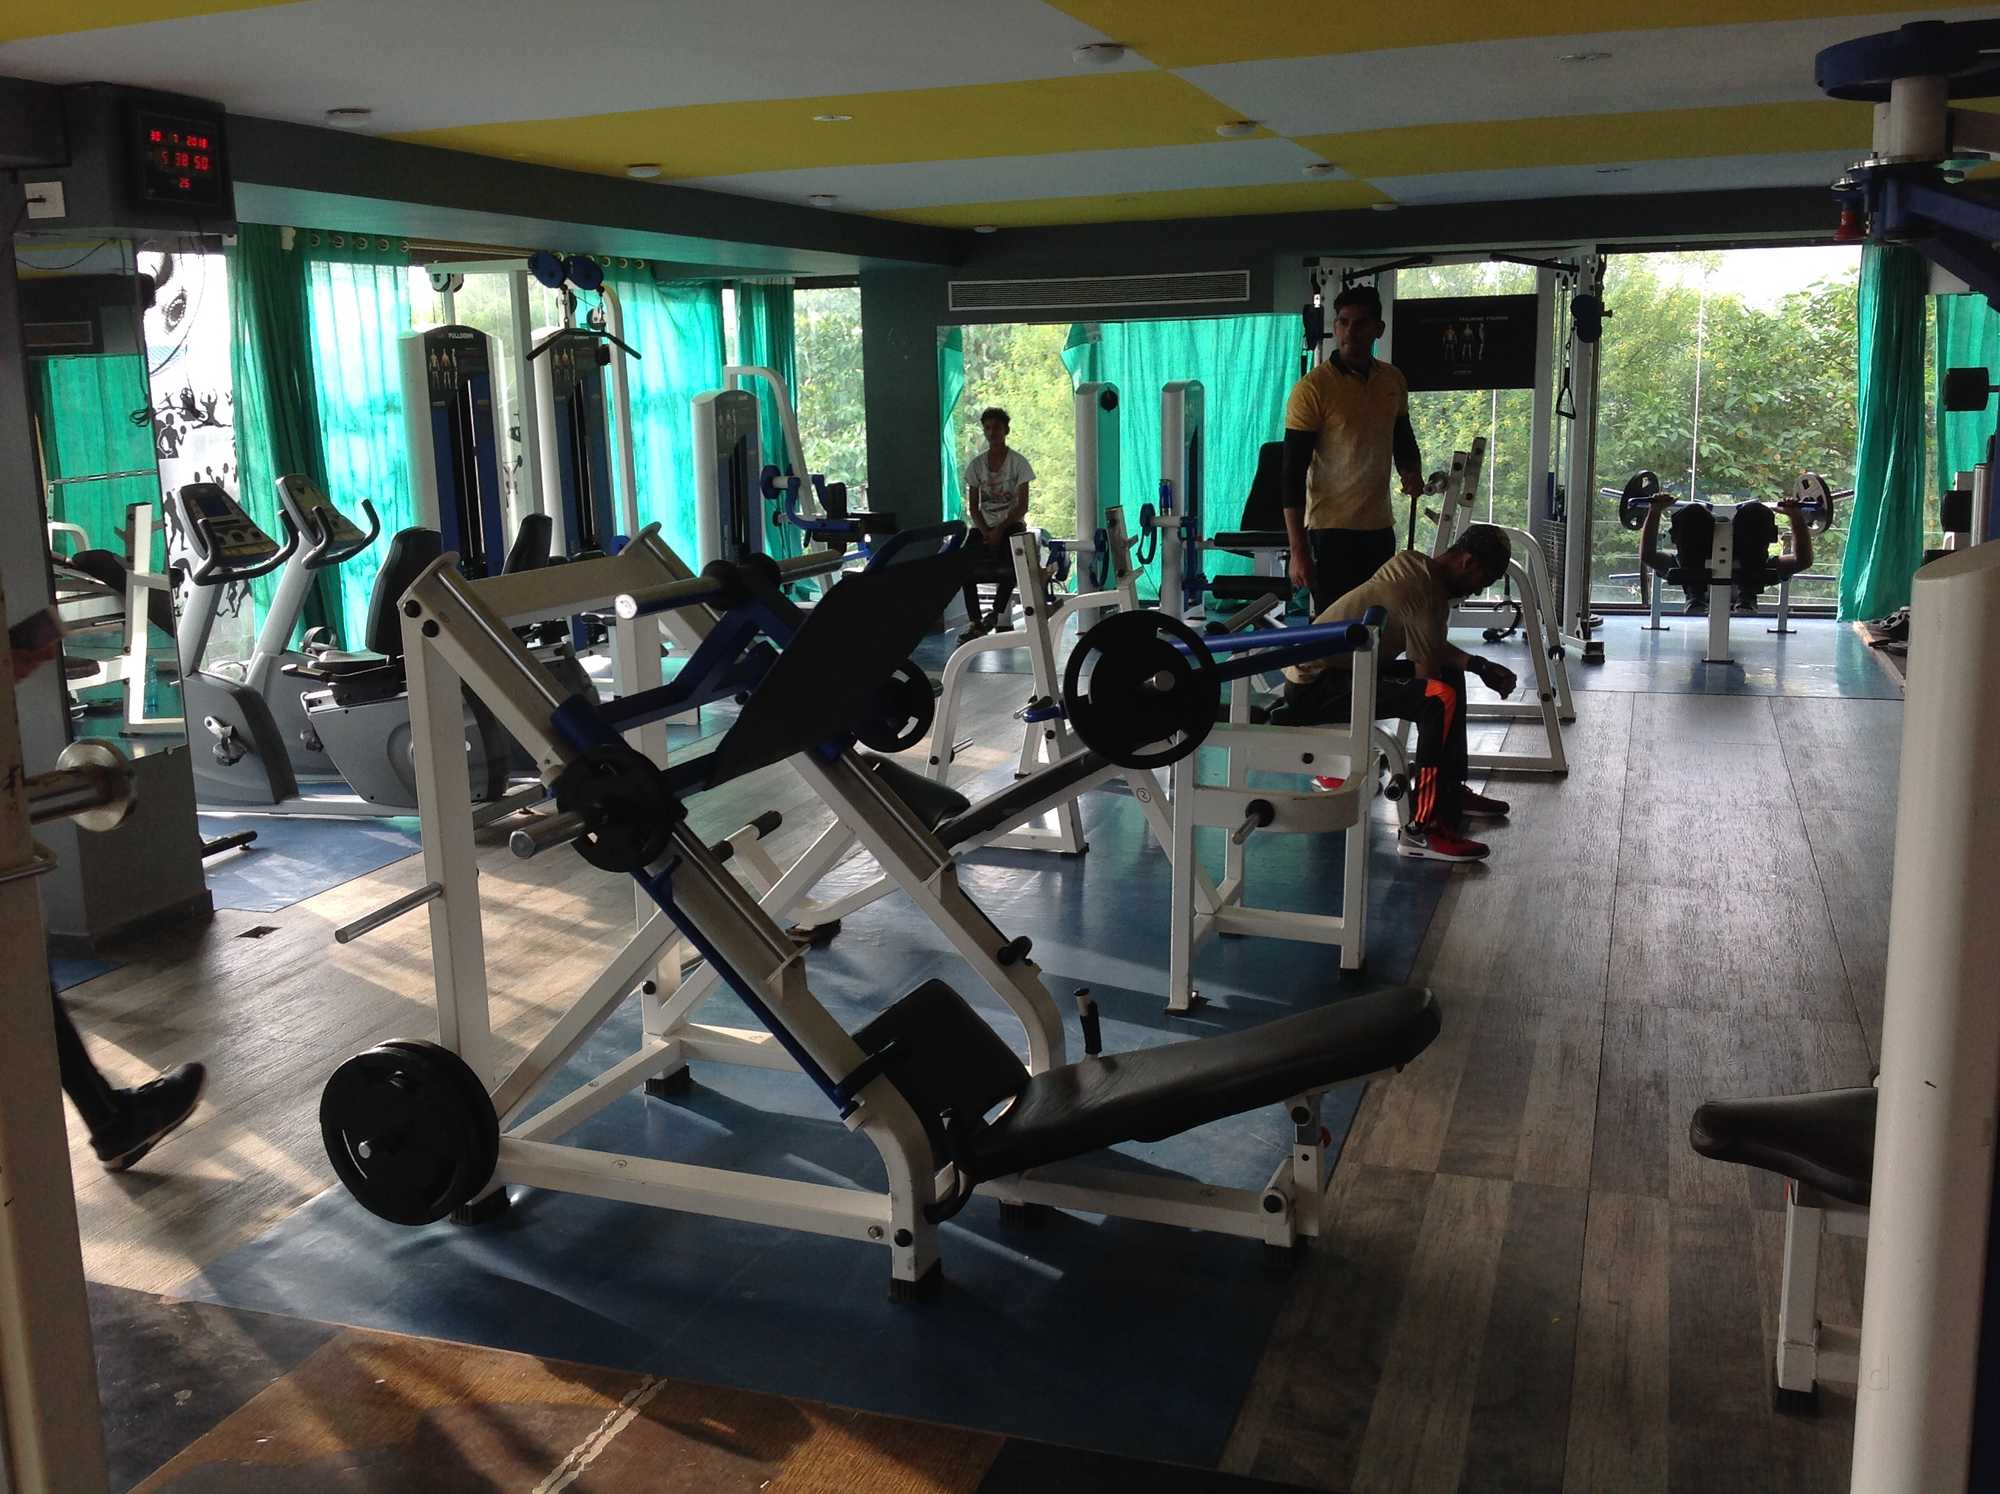 Top gyms in ujjain best body building fitness centres